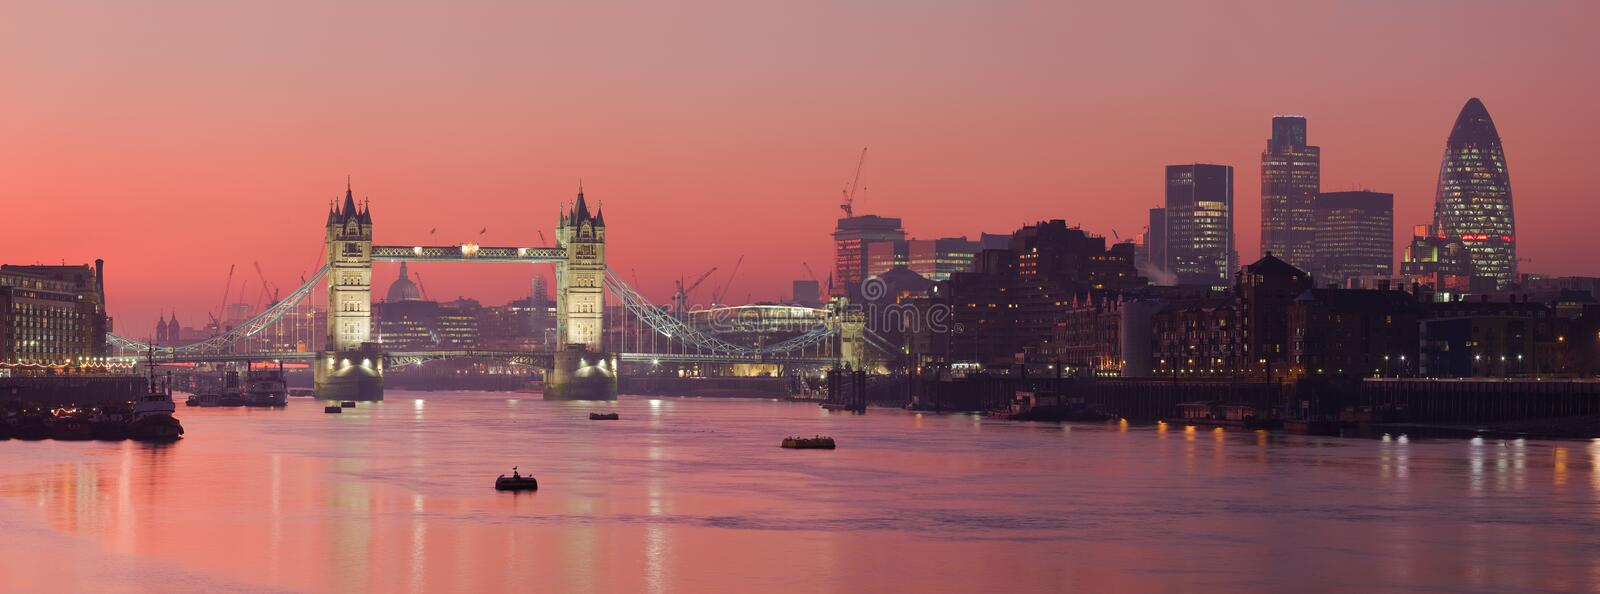 Tower Bridge and city of London with deep red suns royalty free stock images